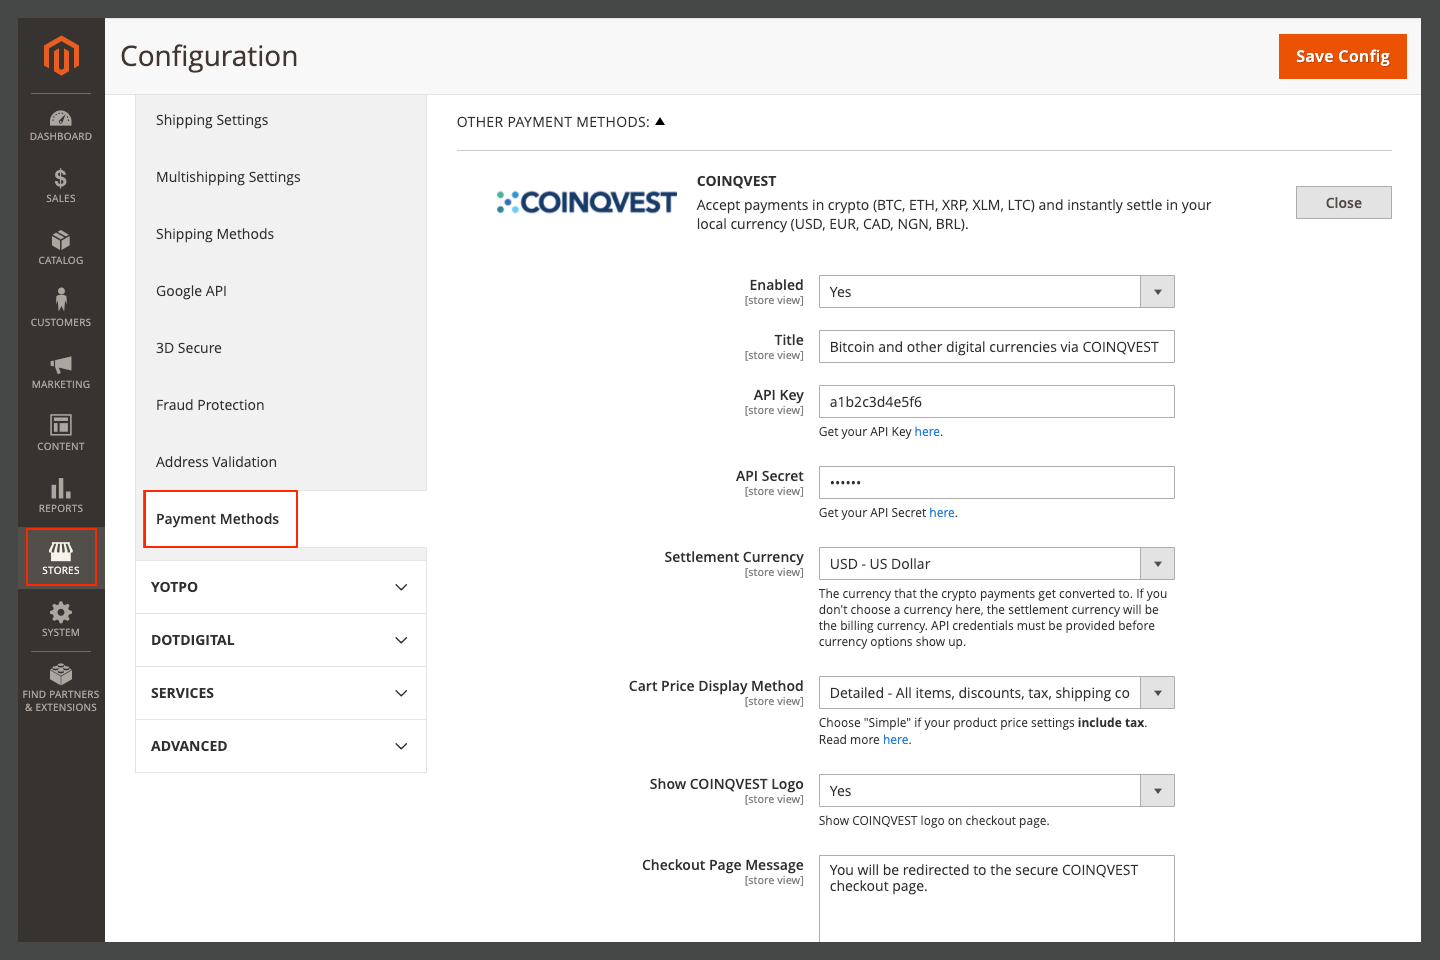 COINQVEST Payment Method Settings in Magento Admin Area